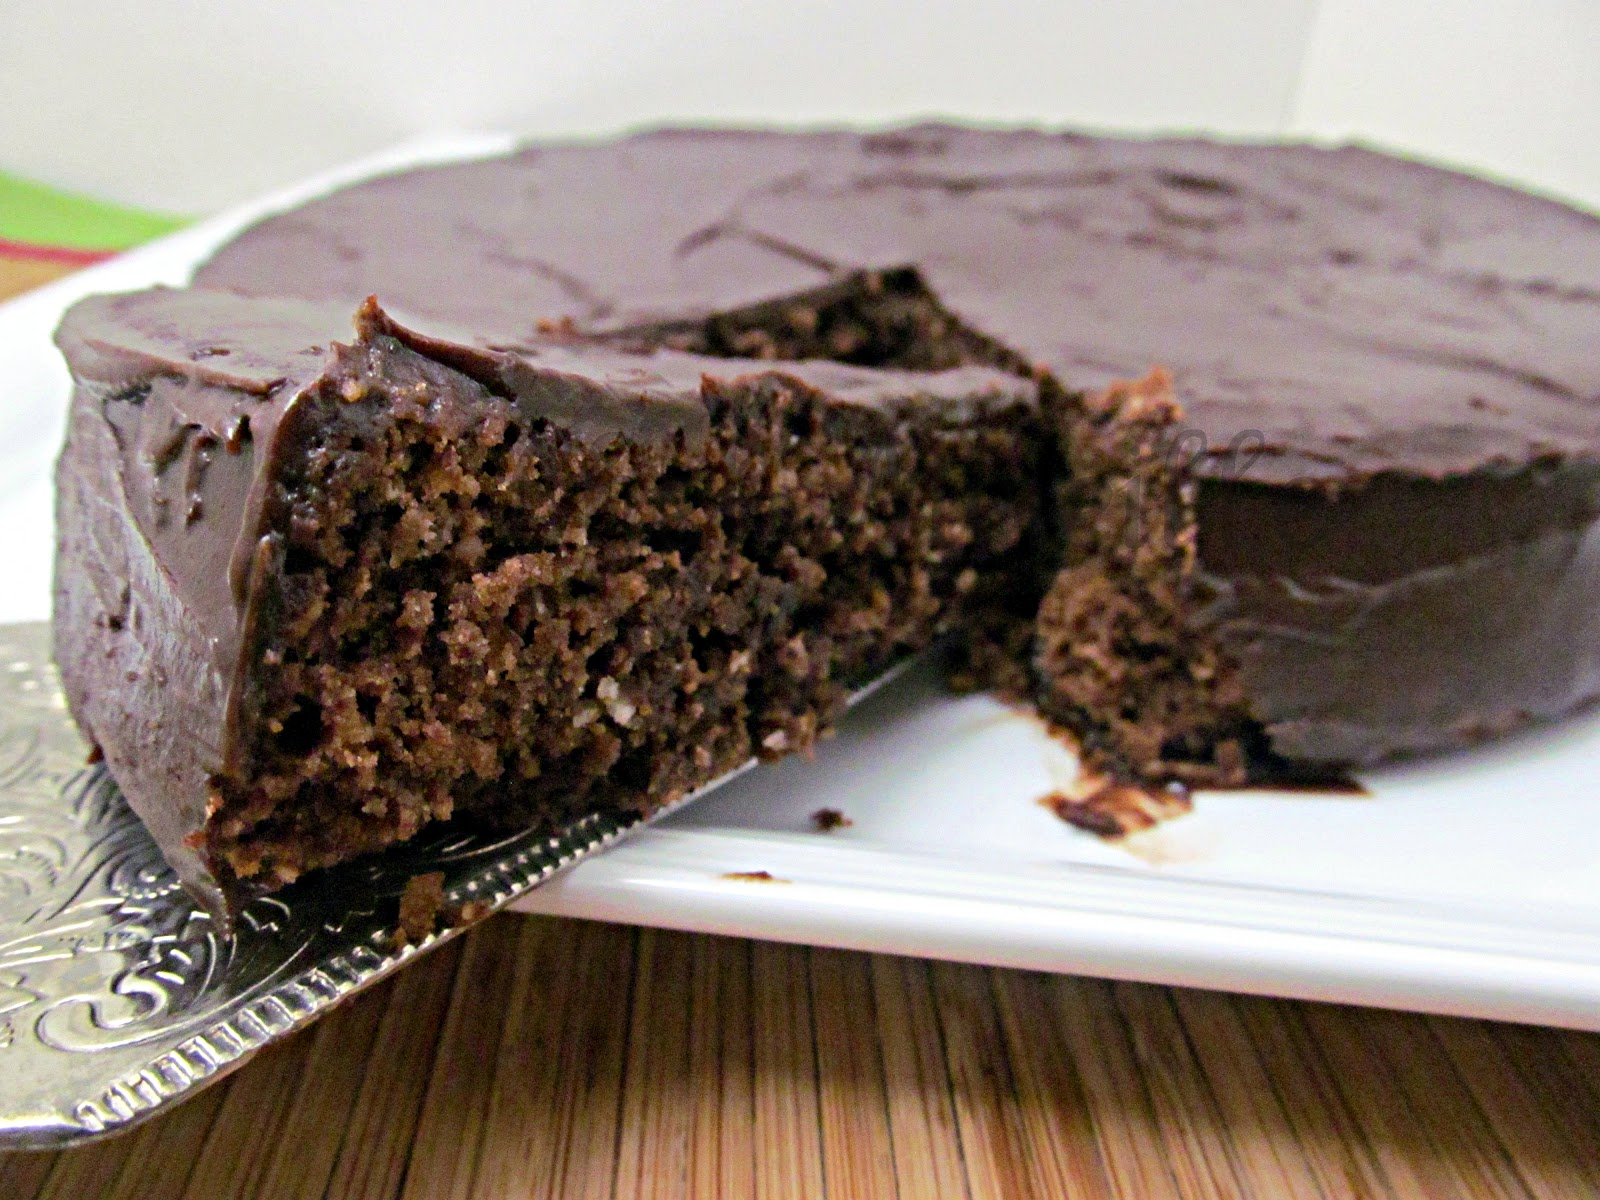 Chef Mireille's Global Creations: Chocolate Almond Cake